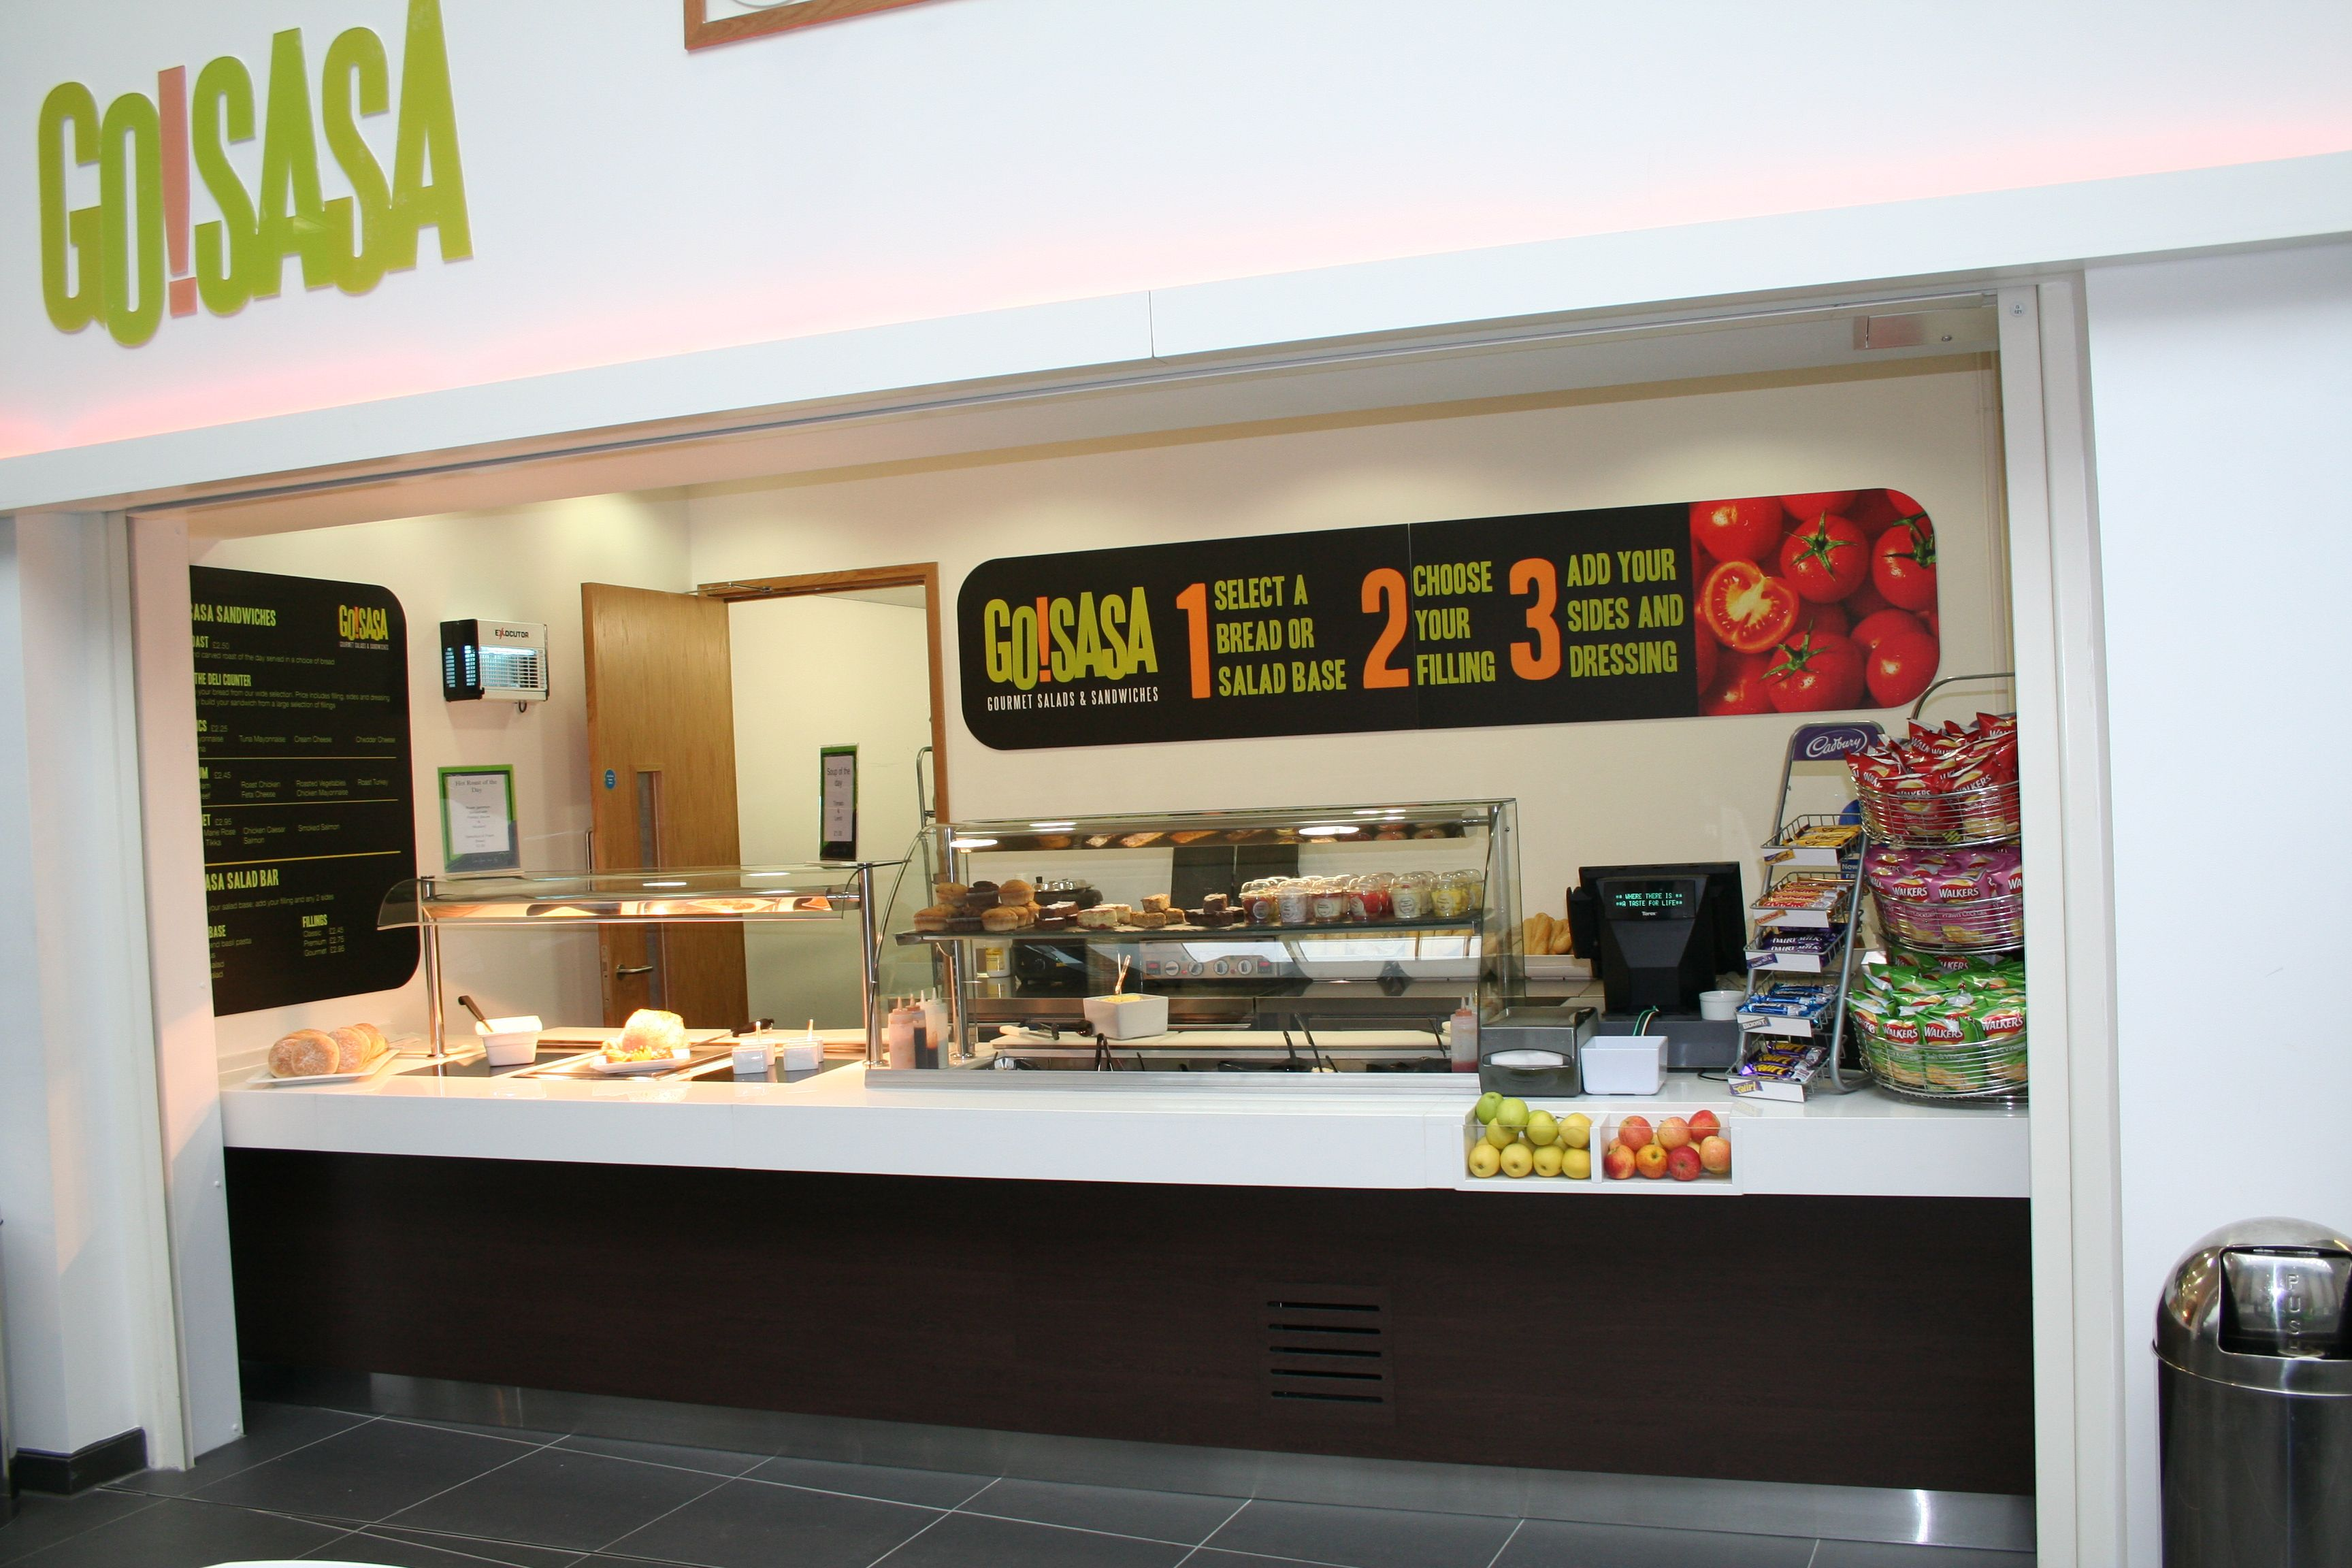 Hot And Cold Food Service Counter Ifse Were Involved In